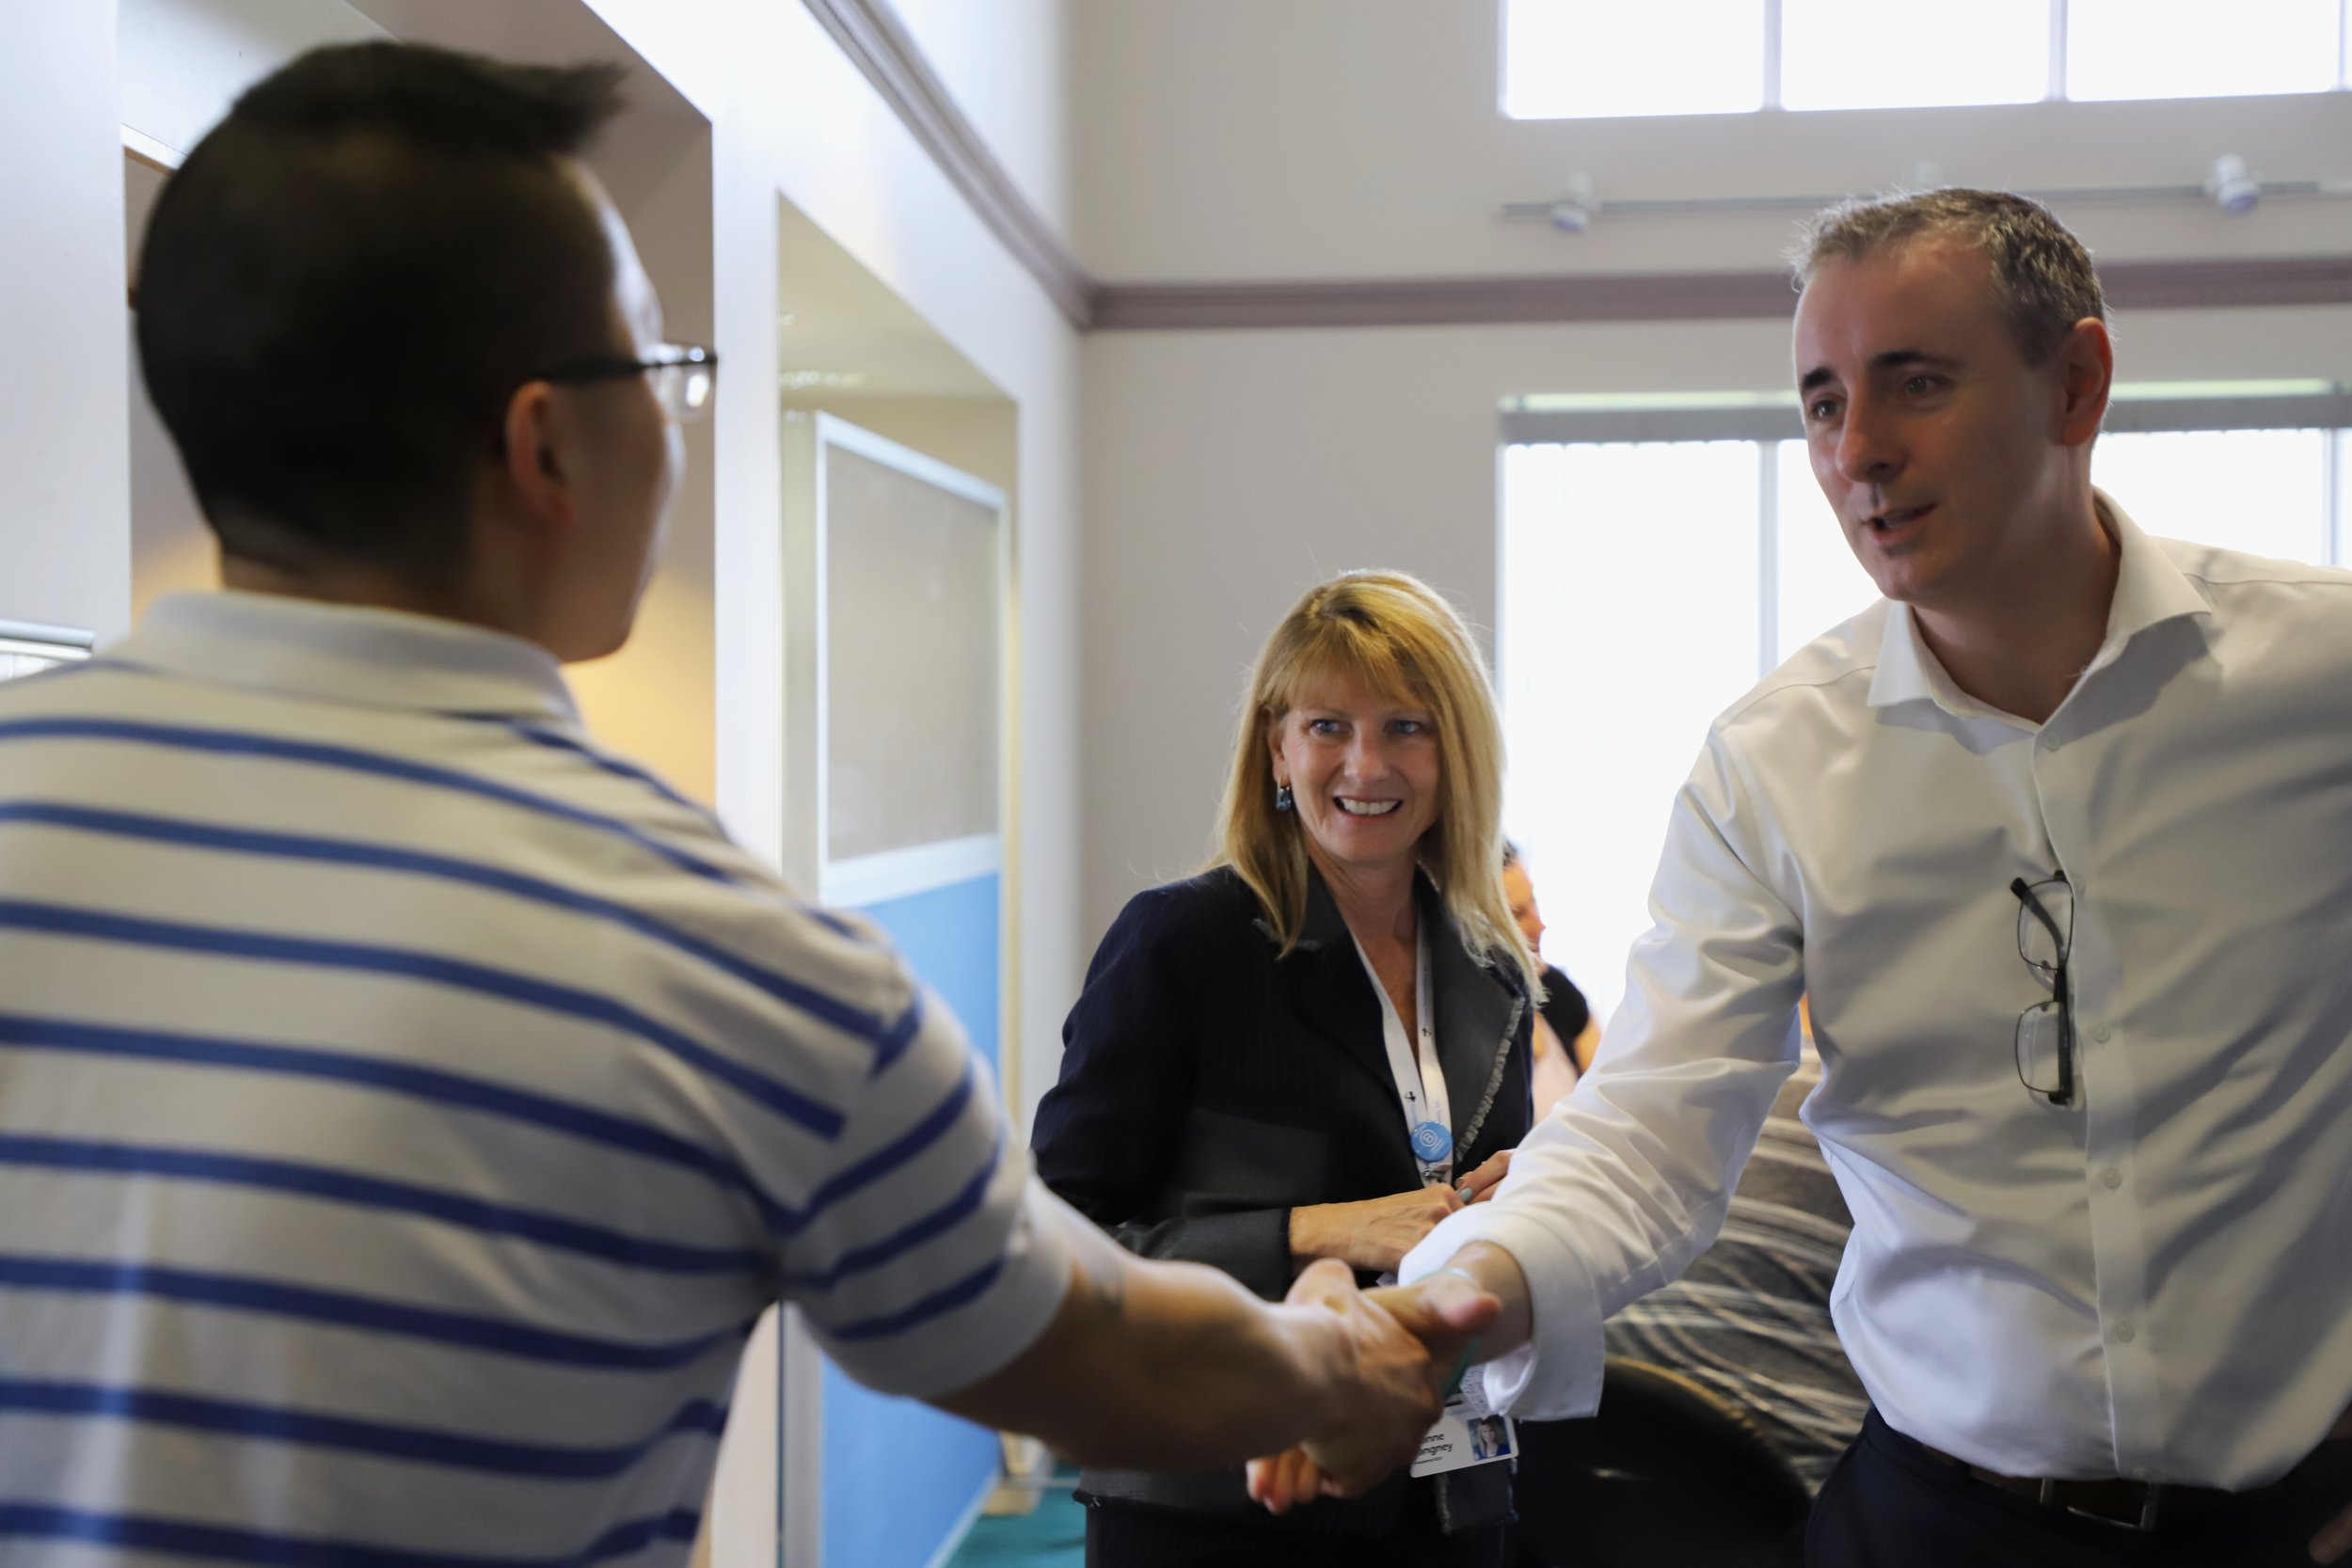 U.S. Rep. Brian Fitzpatrick, right, who represents Pennsylvania District 1, recently stopped by Success Rehabilitation's Outpatient Program in Bucks County, Pennsylvania.